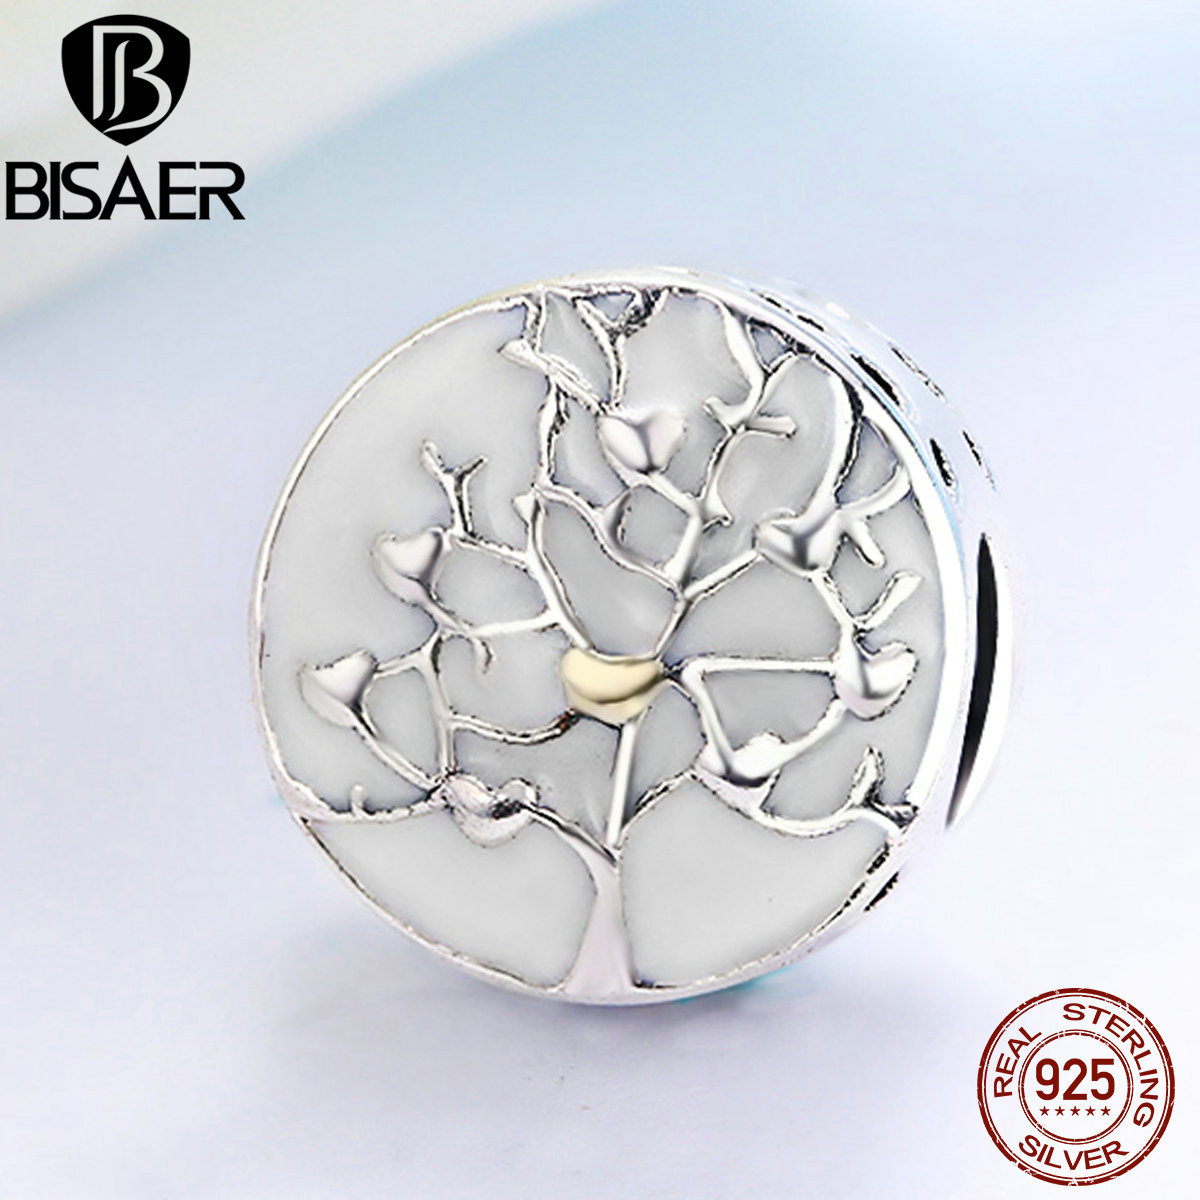 BISAER 925 Sterling Silver Tree Of Gold Hearts, Silver Enamel Beads fit Pandora Charms Bracelets DIY Accessories HTC102